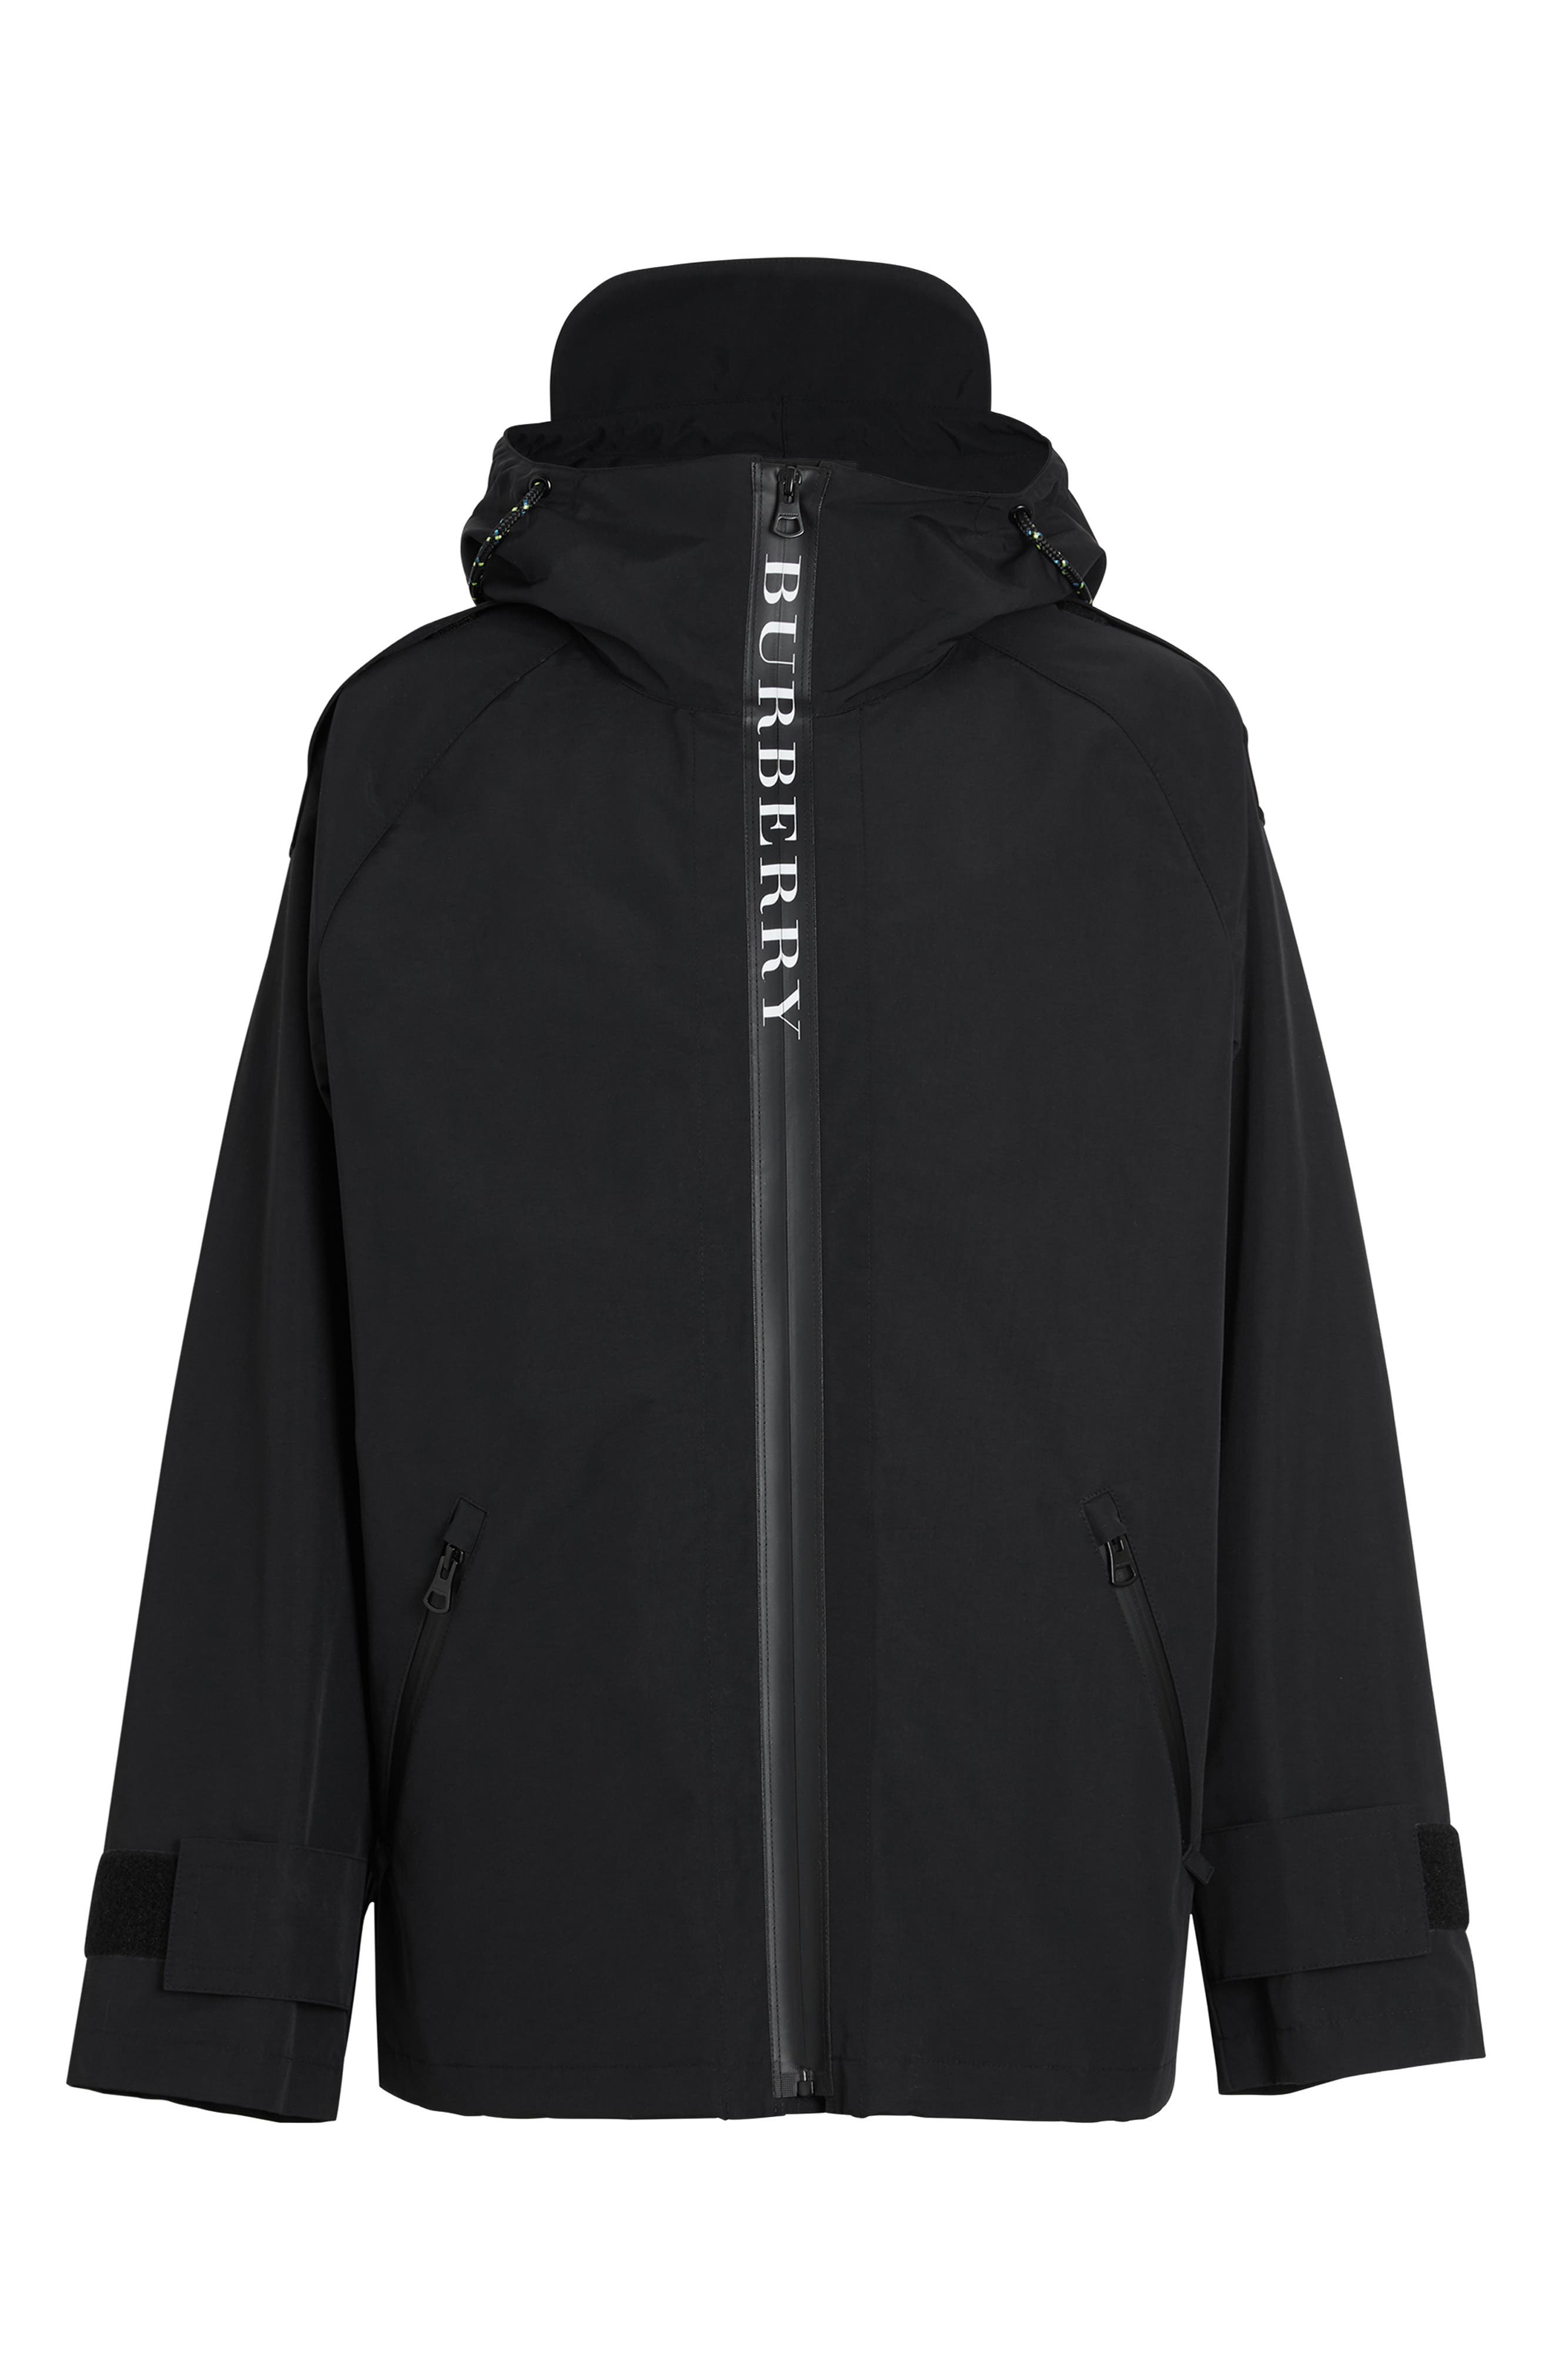 BURBERRY, Roberts Nylon Hooded Jacket, Alternate thumbnail 5, color, BLACK